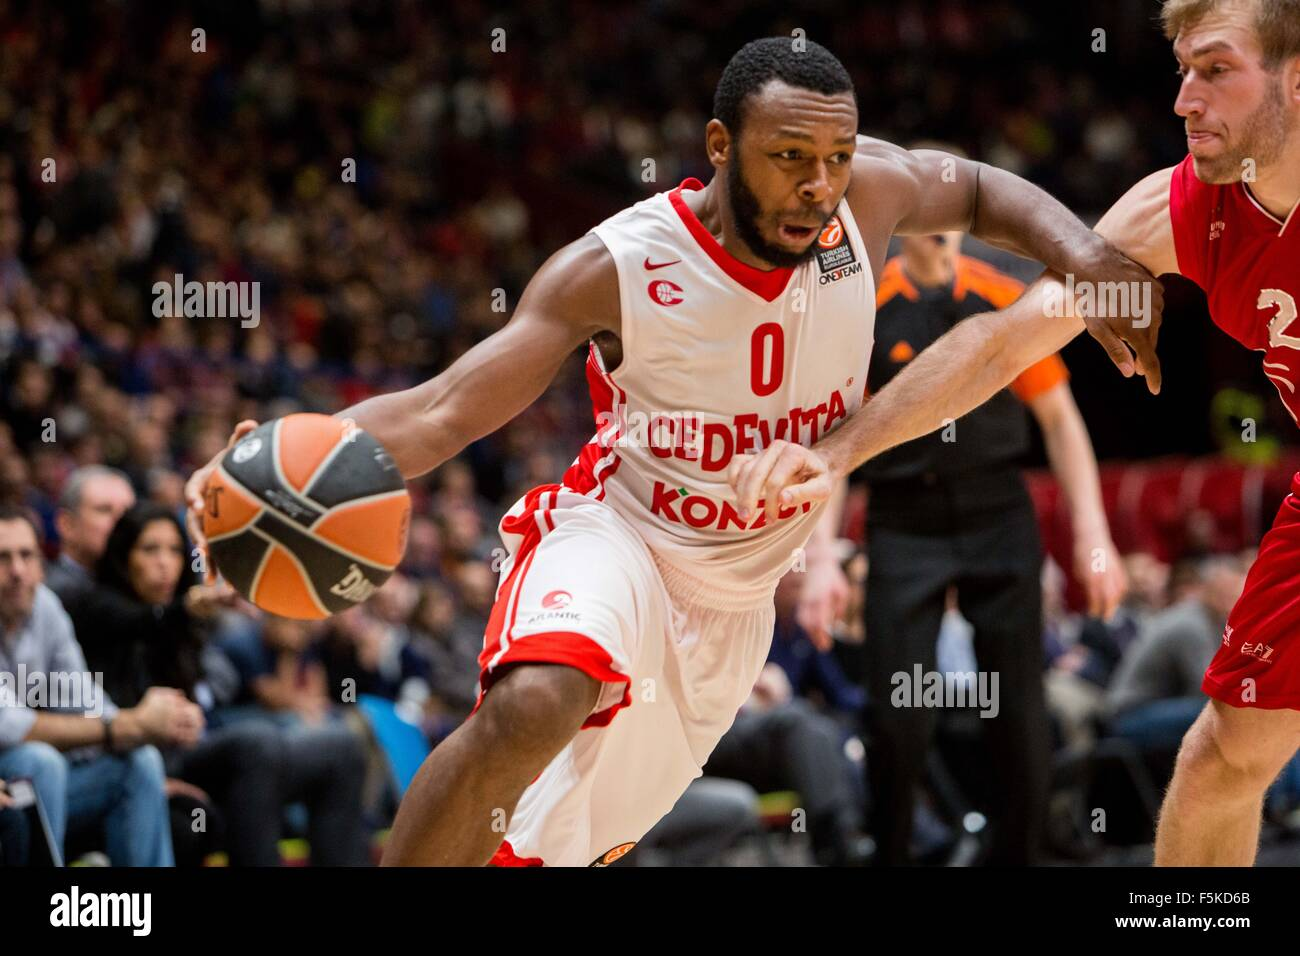 Milan, Italy. 05th Nov, 2015. Jacob Pullen of Cedevita Zagreb during their match against EA7 Emporio Armani at Euroleague - Stock Image